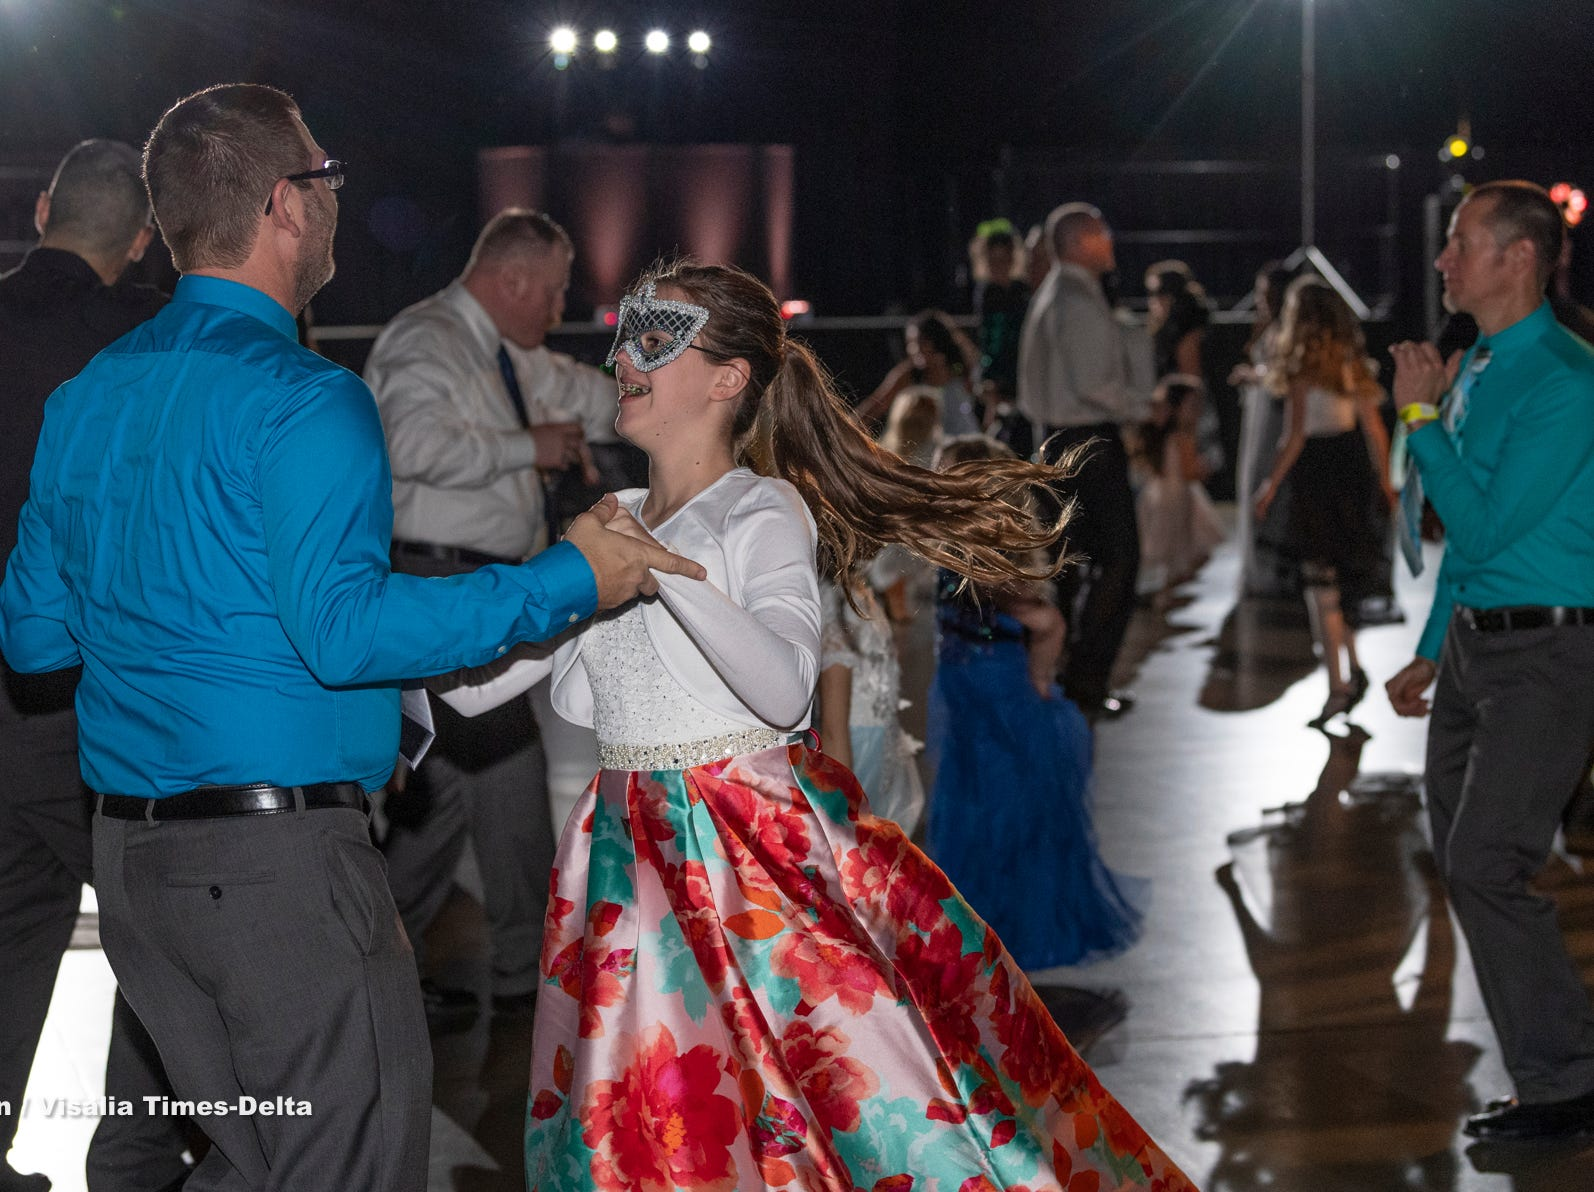 """Reggie Ellis and his daughter Alyssa Ellis, 12, dance during the annual Father-Daughter Dance at the Visalia Convention Center on Saturday, February 16, 2019. This year's theme was """"Masquerade Ball,"""" and included music, dancing and refreshments."""